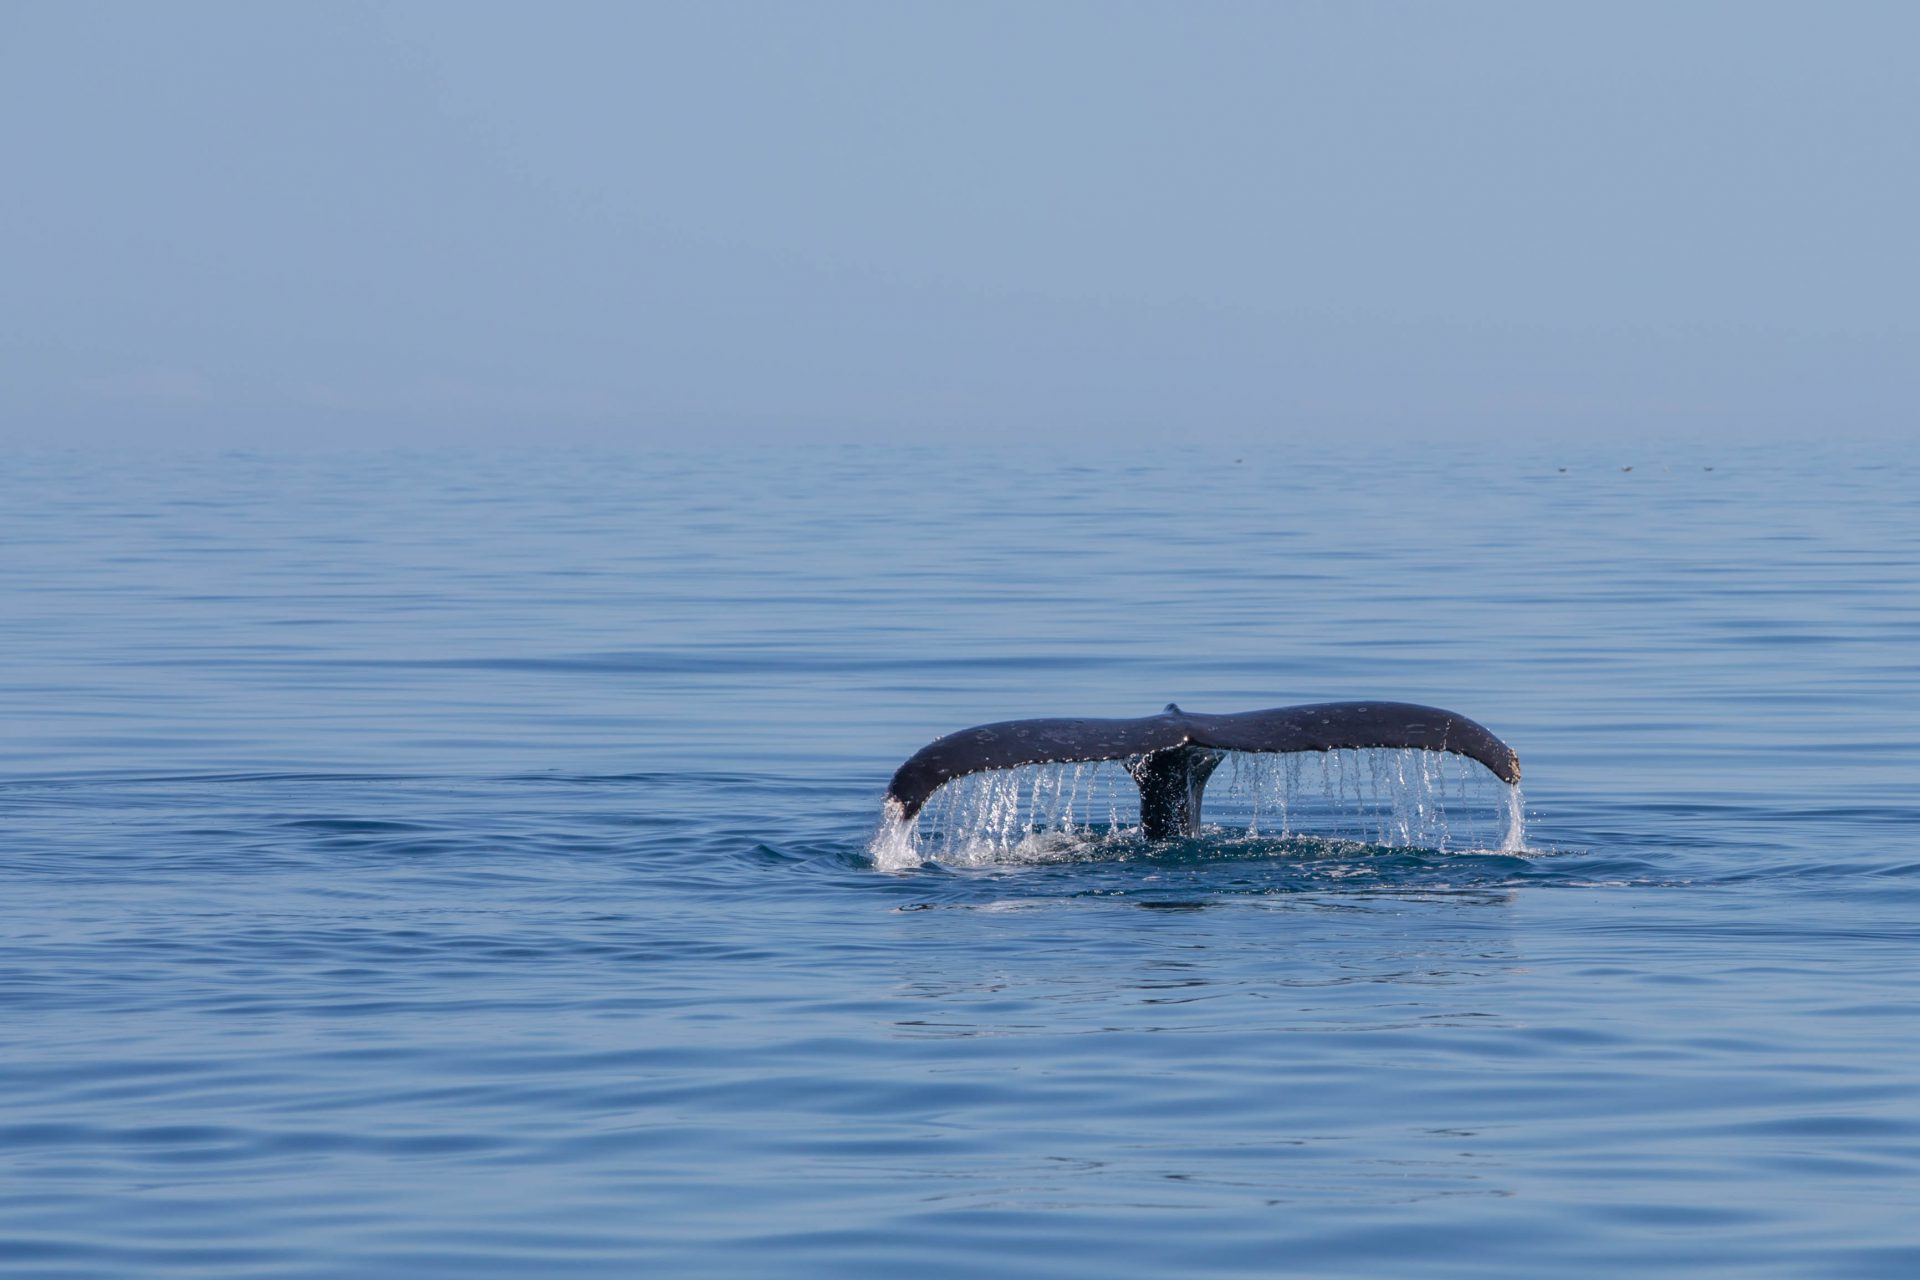 Tail of a humback whale, Hervey Bay